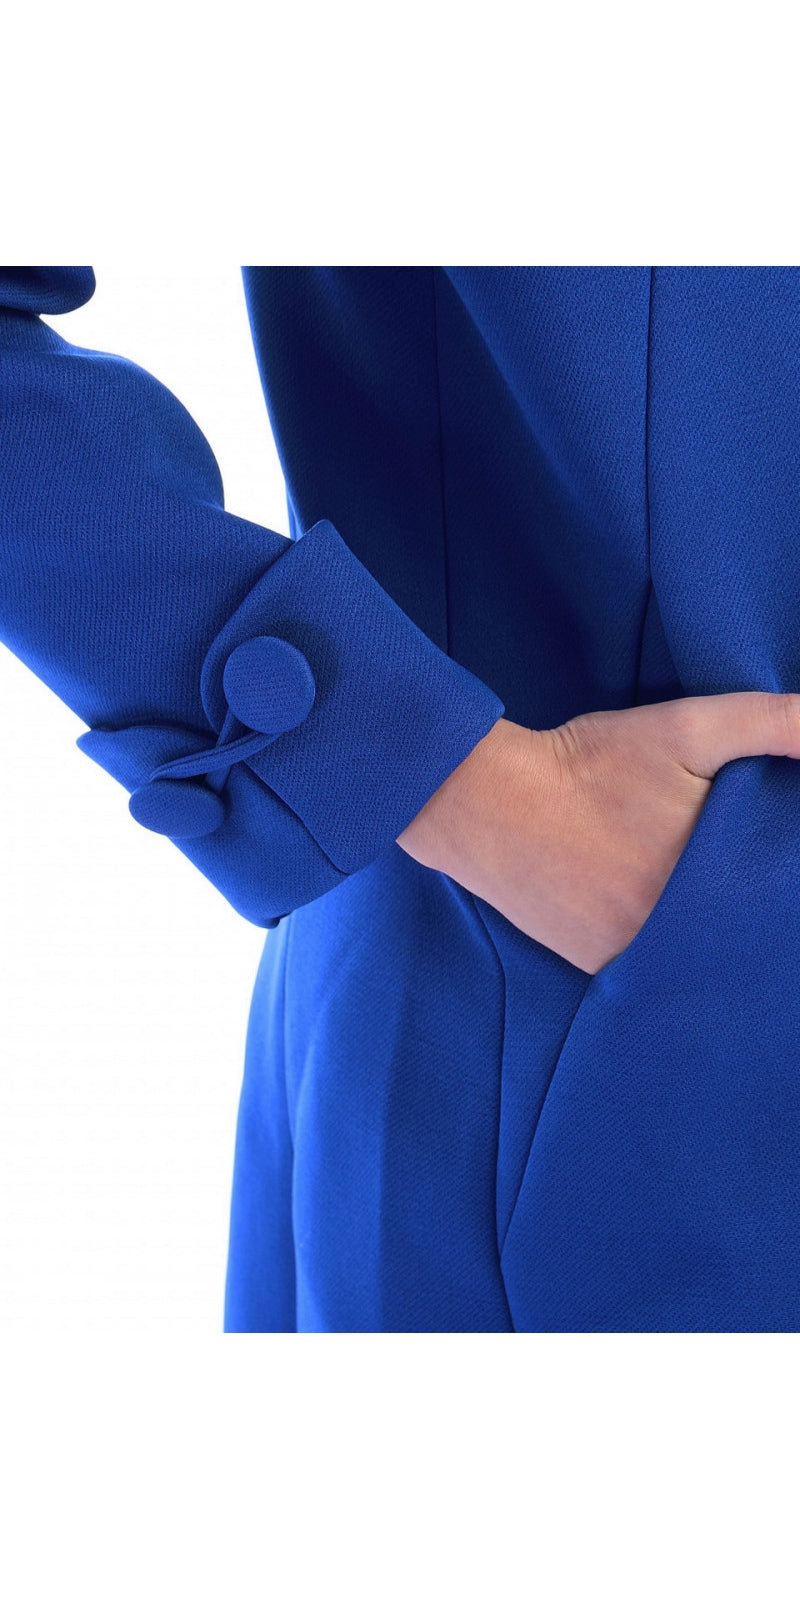 Open Neckline Over Coat - Royal Blue